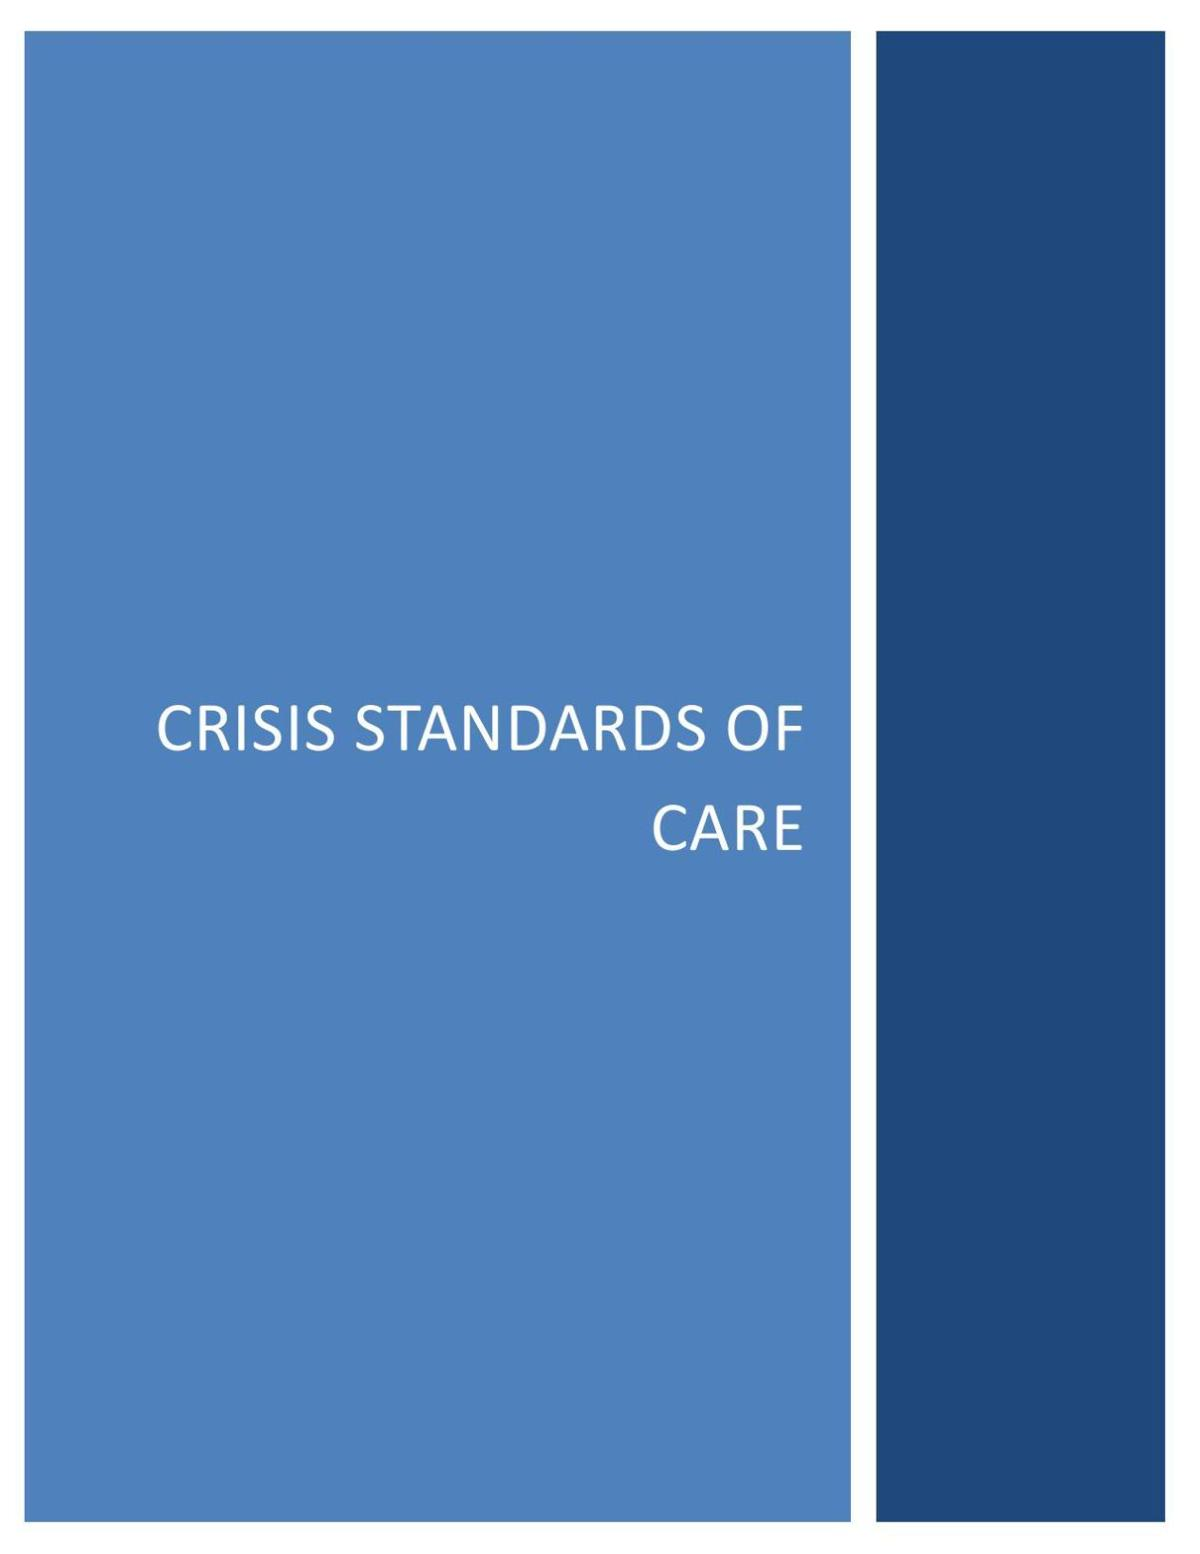 Crisis Standards of Care Plan